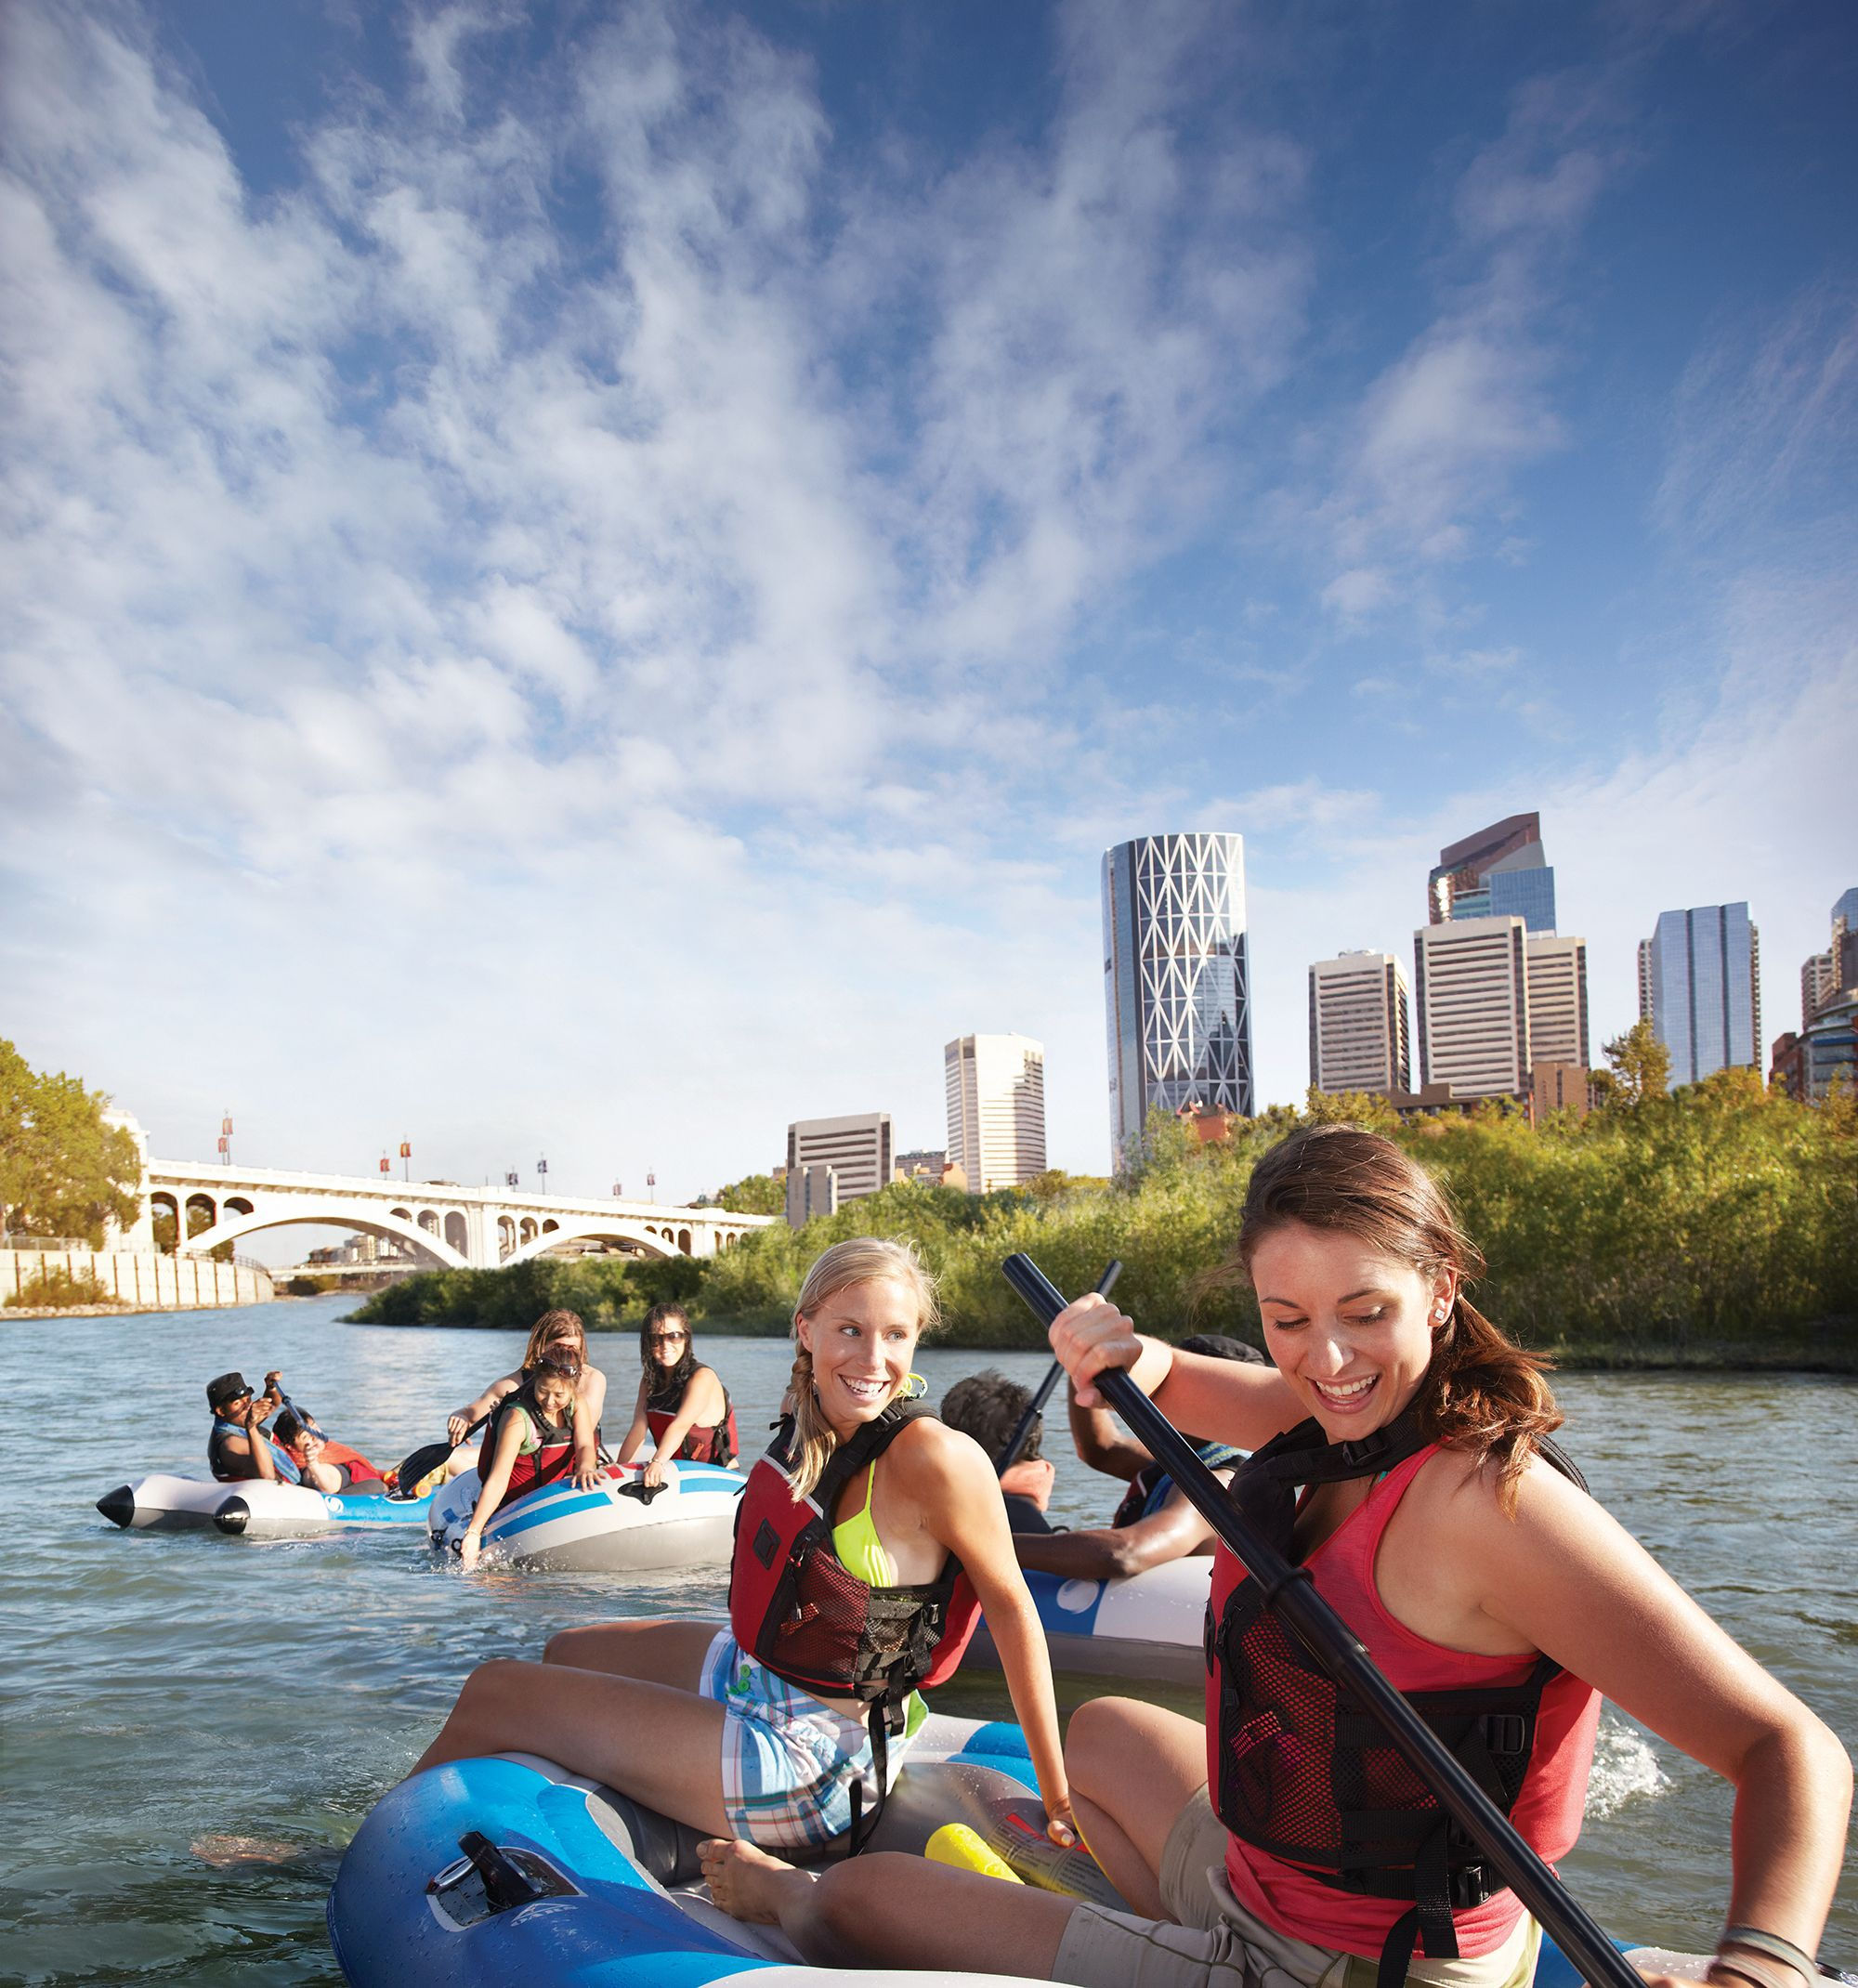 Floating down the Bow River Calgary, 100 things to do